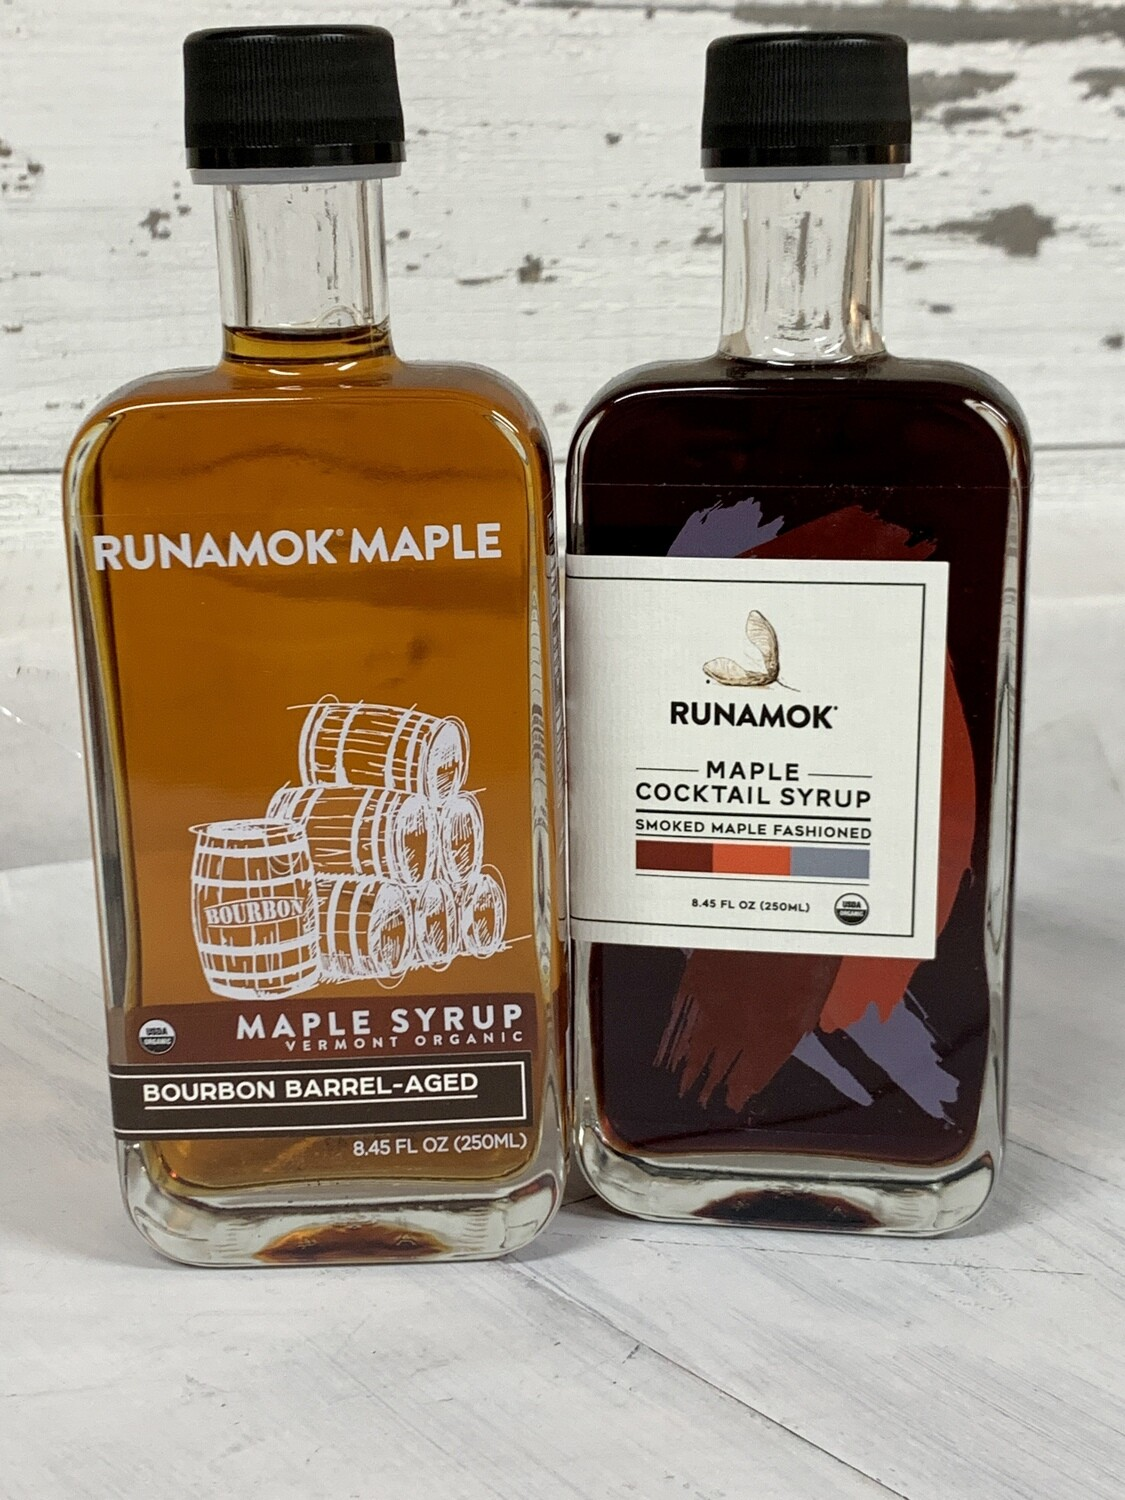 Runamok Maple Syrup and Cocktail Mixer